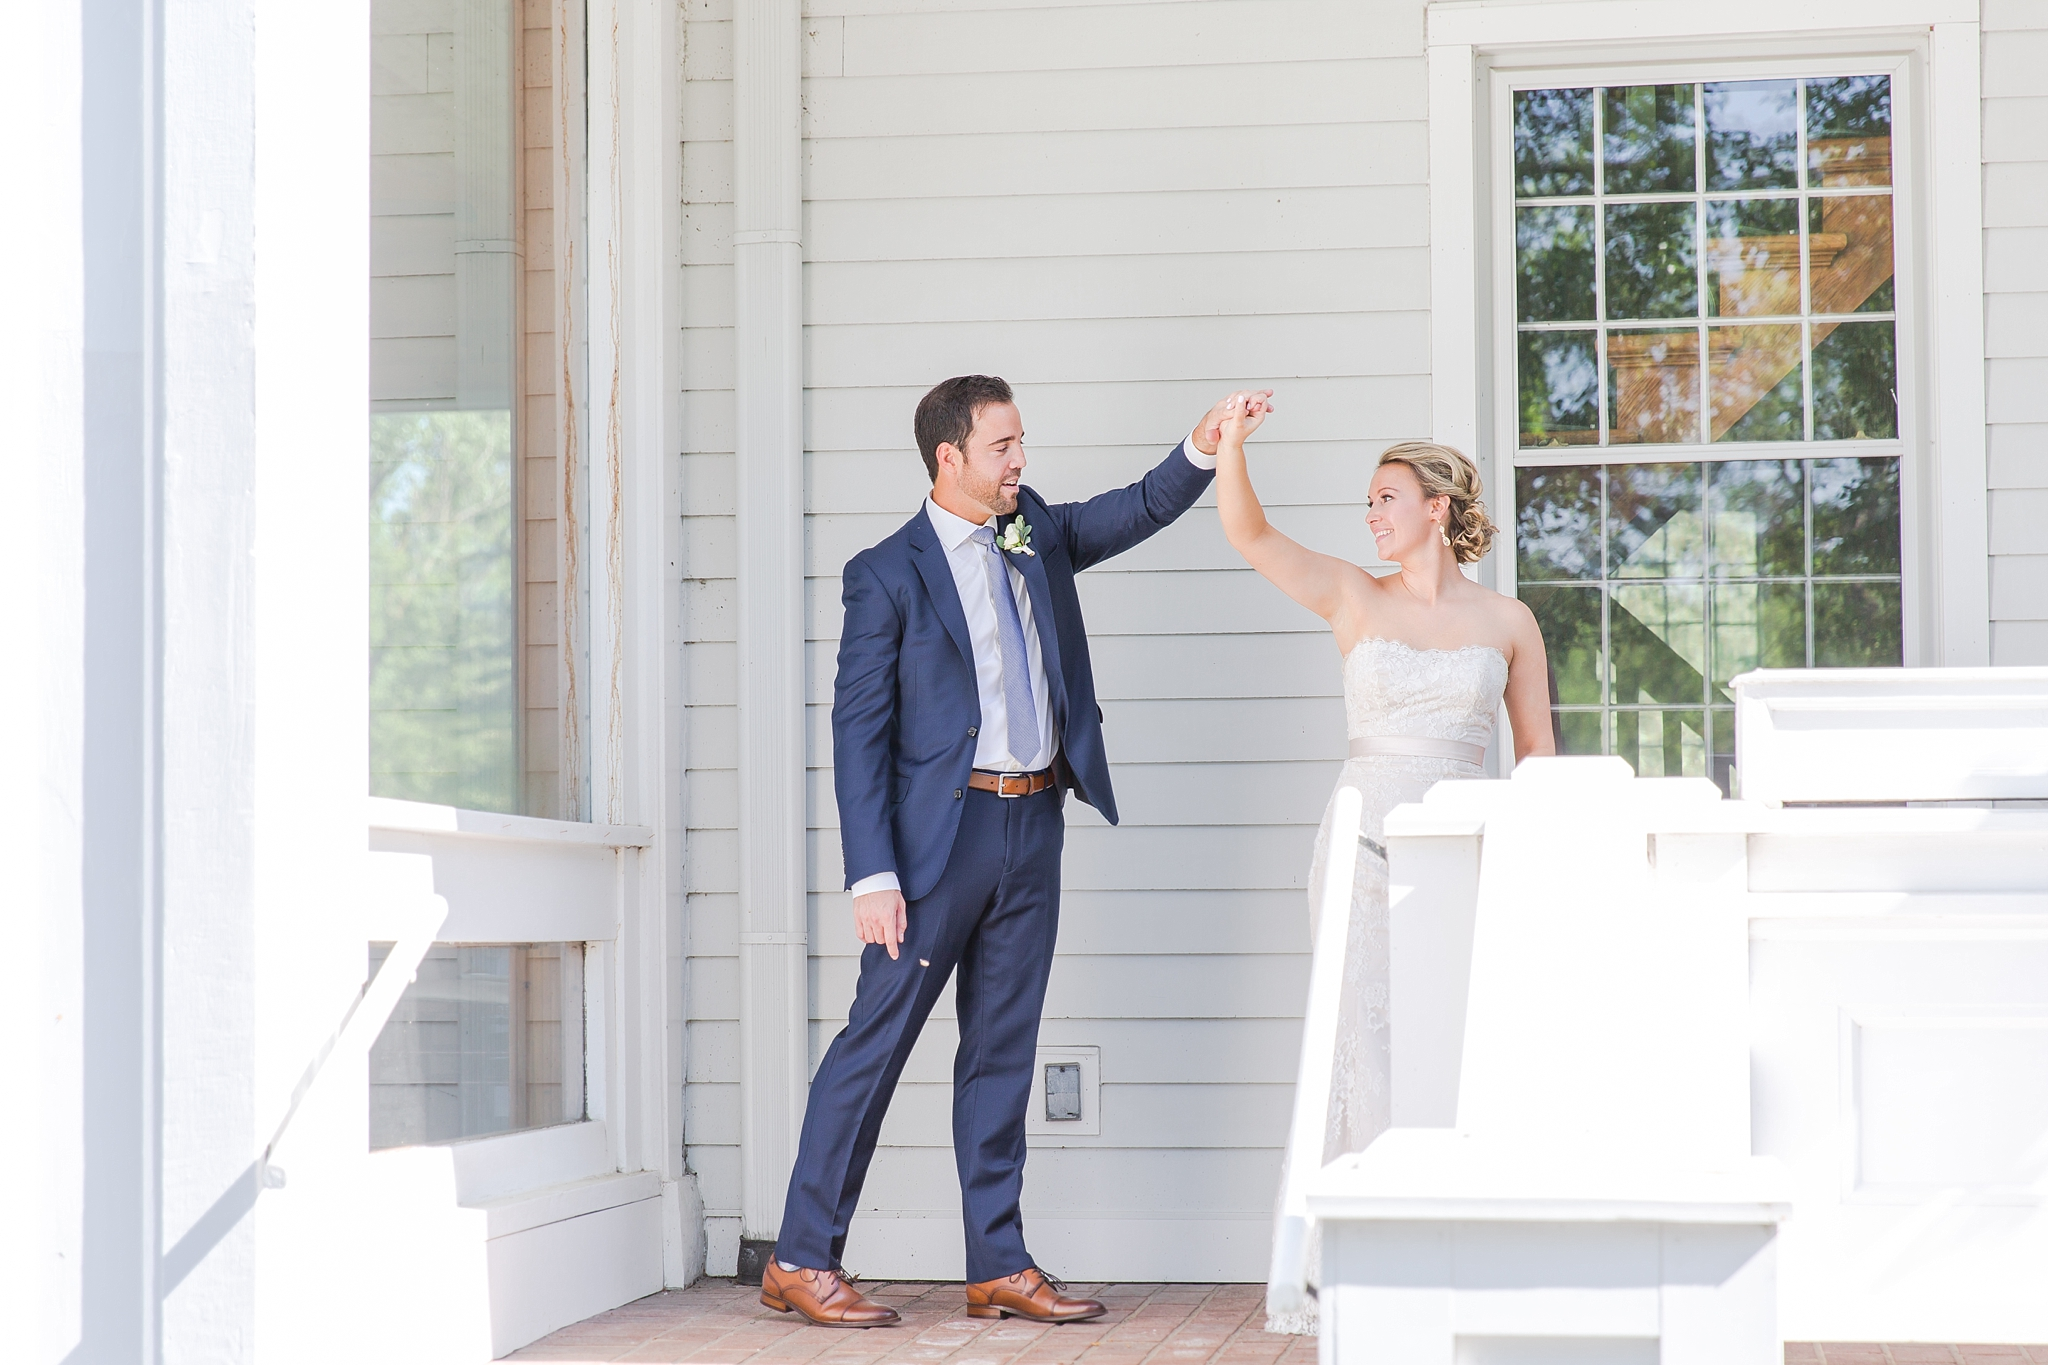 fun-candid-laid-back-wedding-photos-at-wellers-carriage-house-in-saline-michigan-and-at-the-eagle-crest-golf-resort-by-courtney-carolyn-photography_0027.jpg